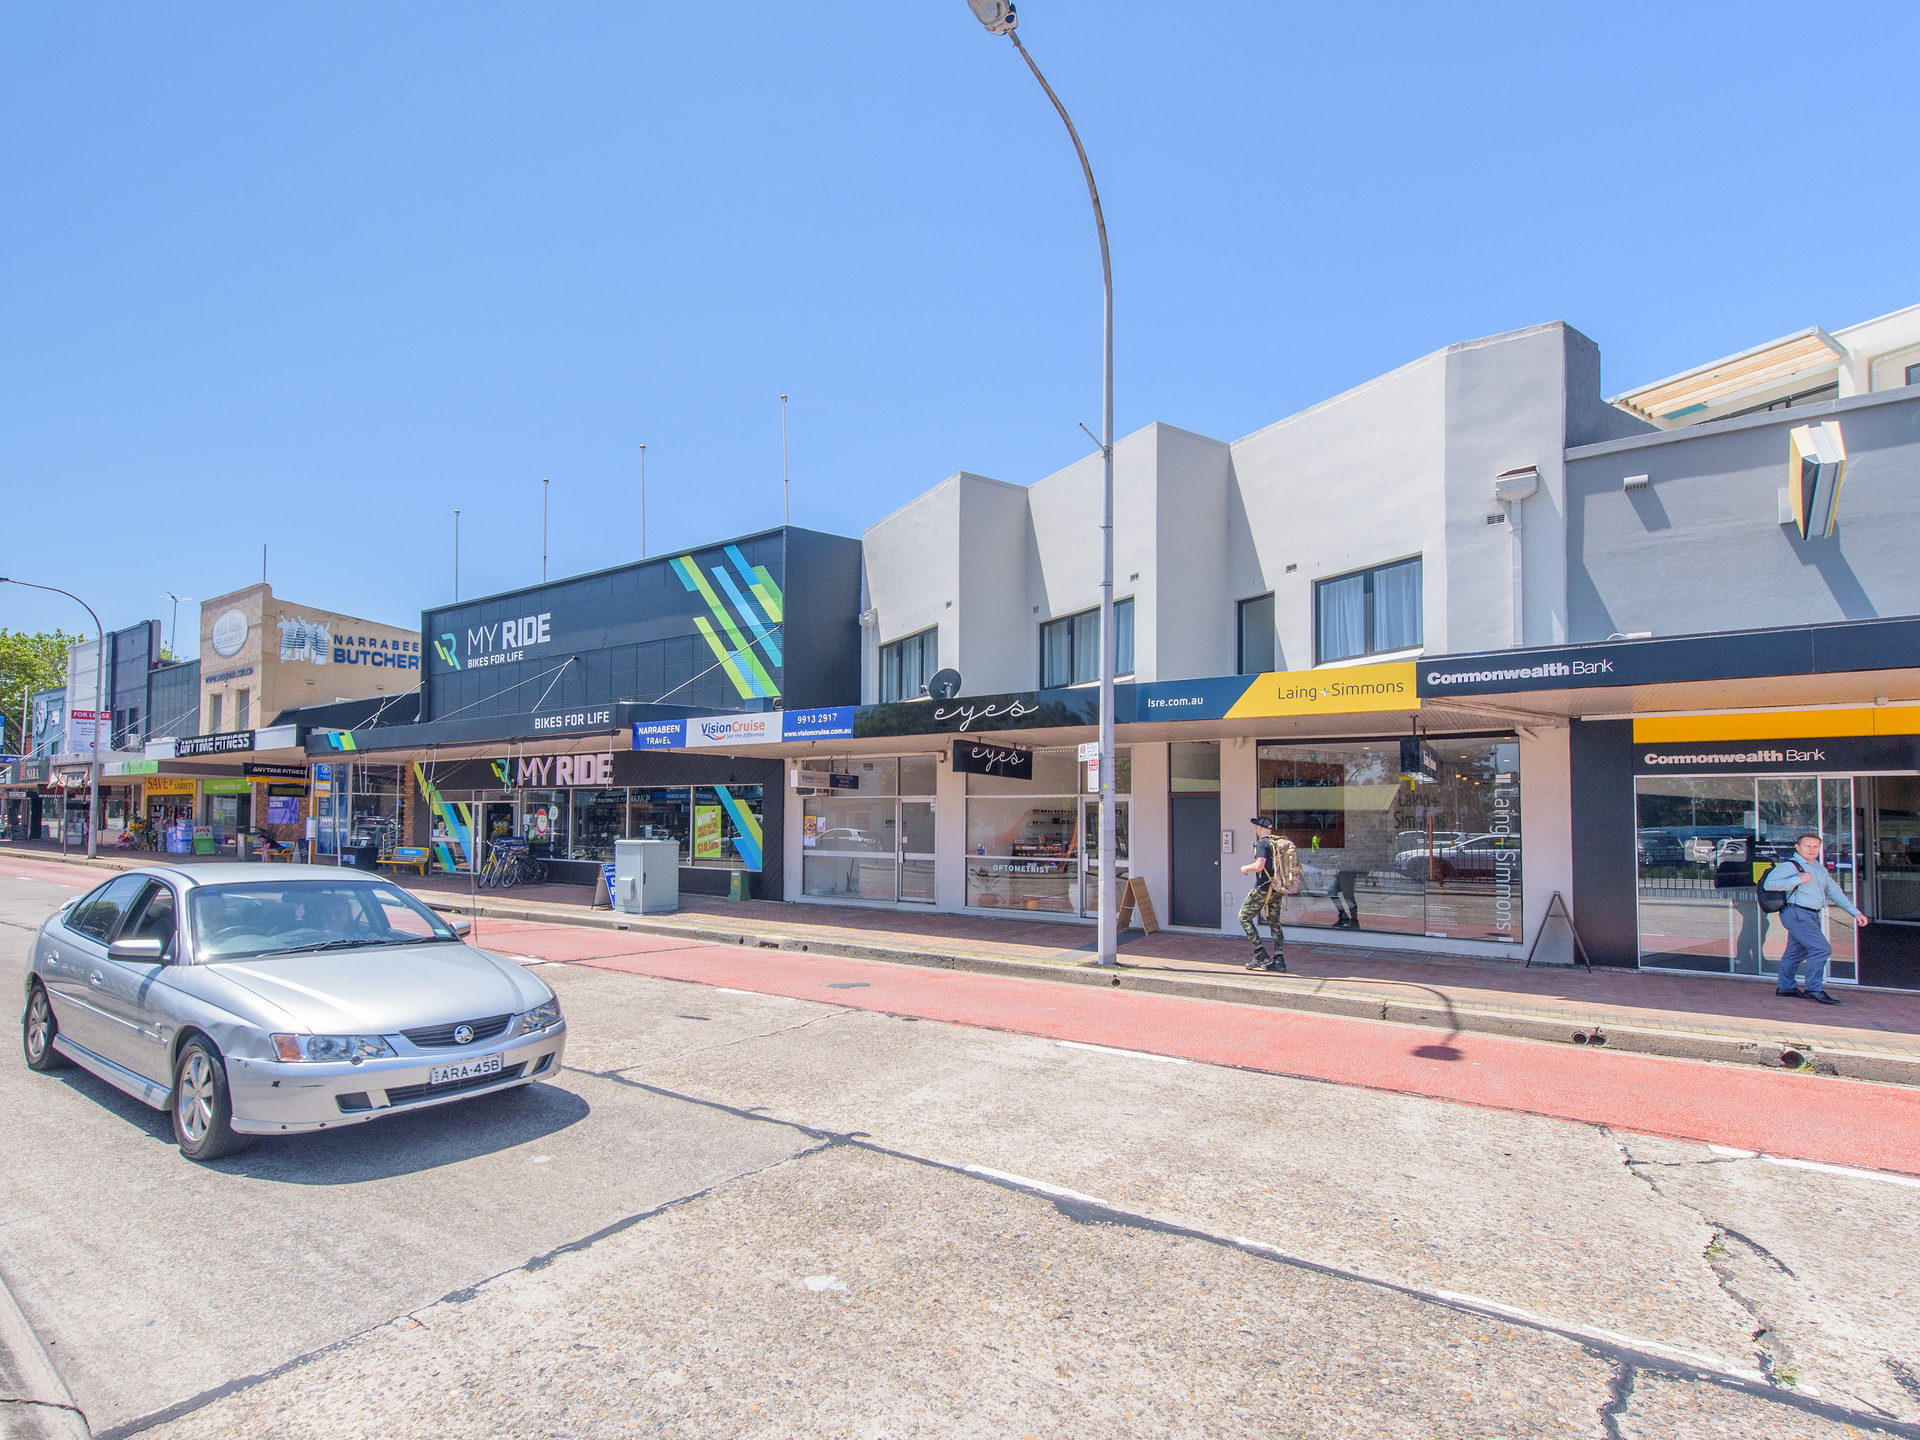 Entry Level | Sydney Northern Beaches Retail Investment